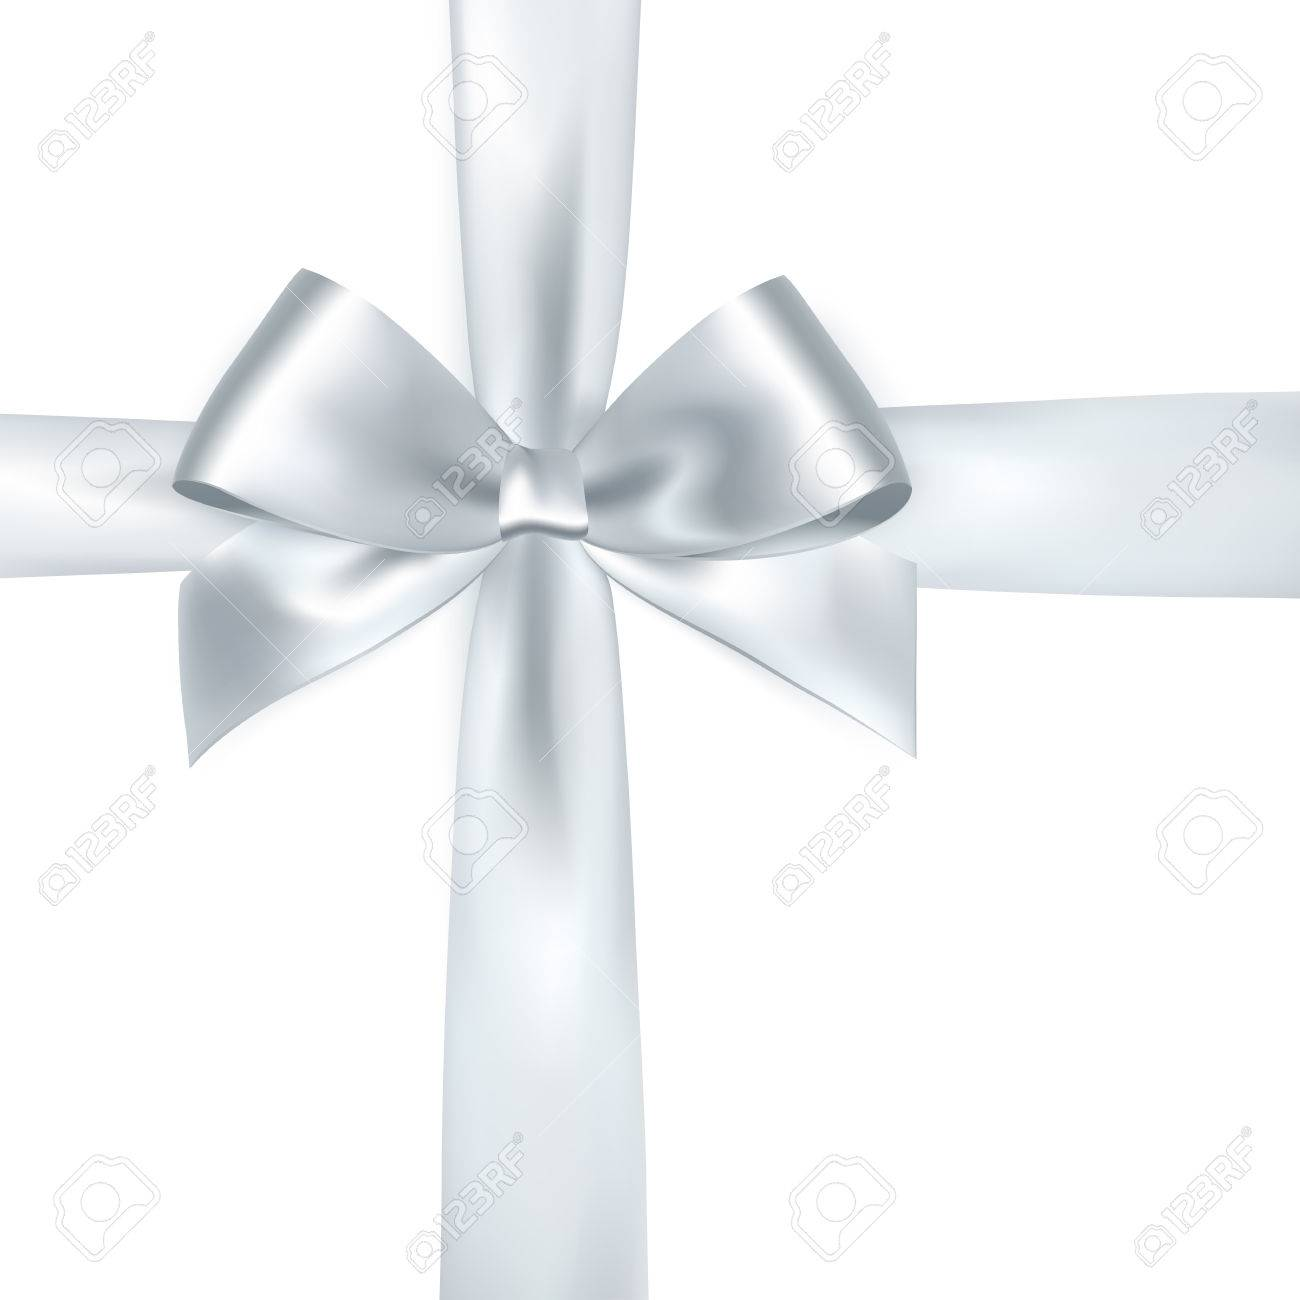 Shiny white satin ribbon on white background. Vector silver bow and ribbon - 56877090